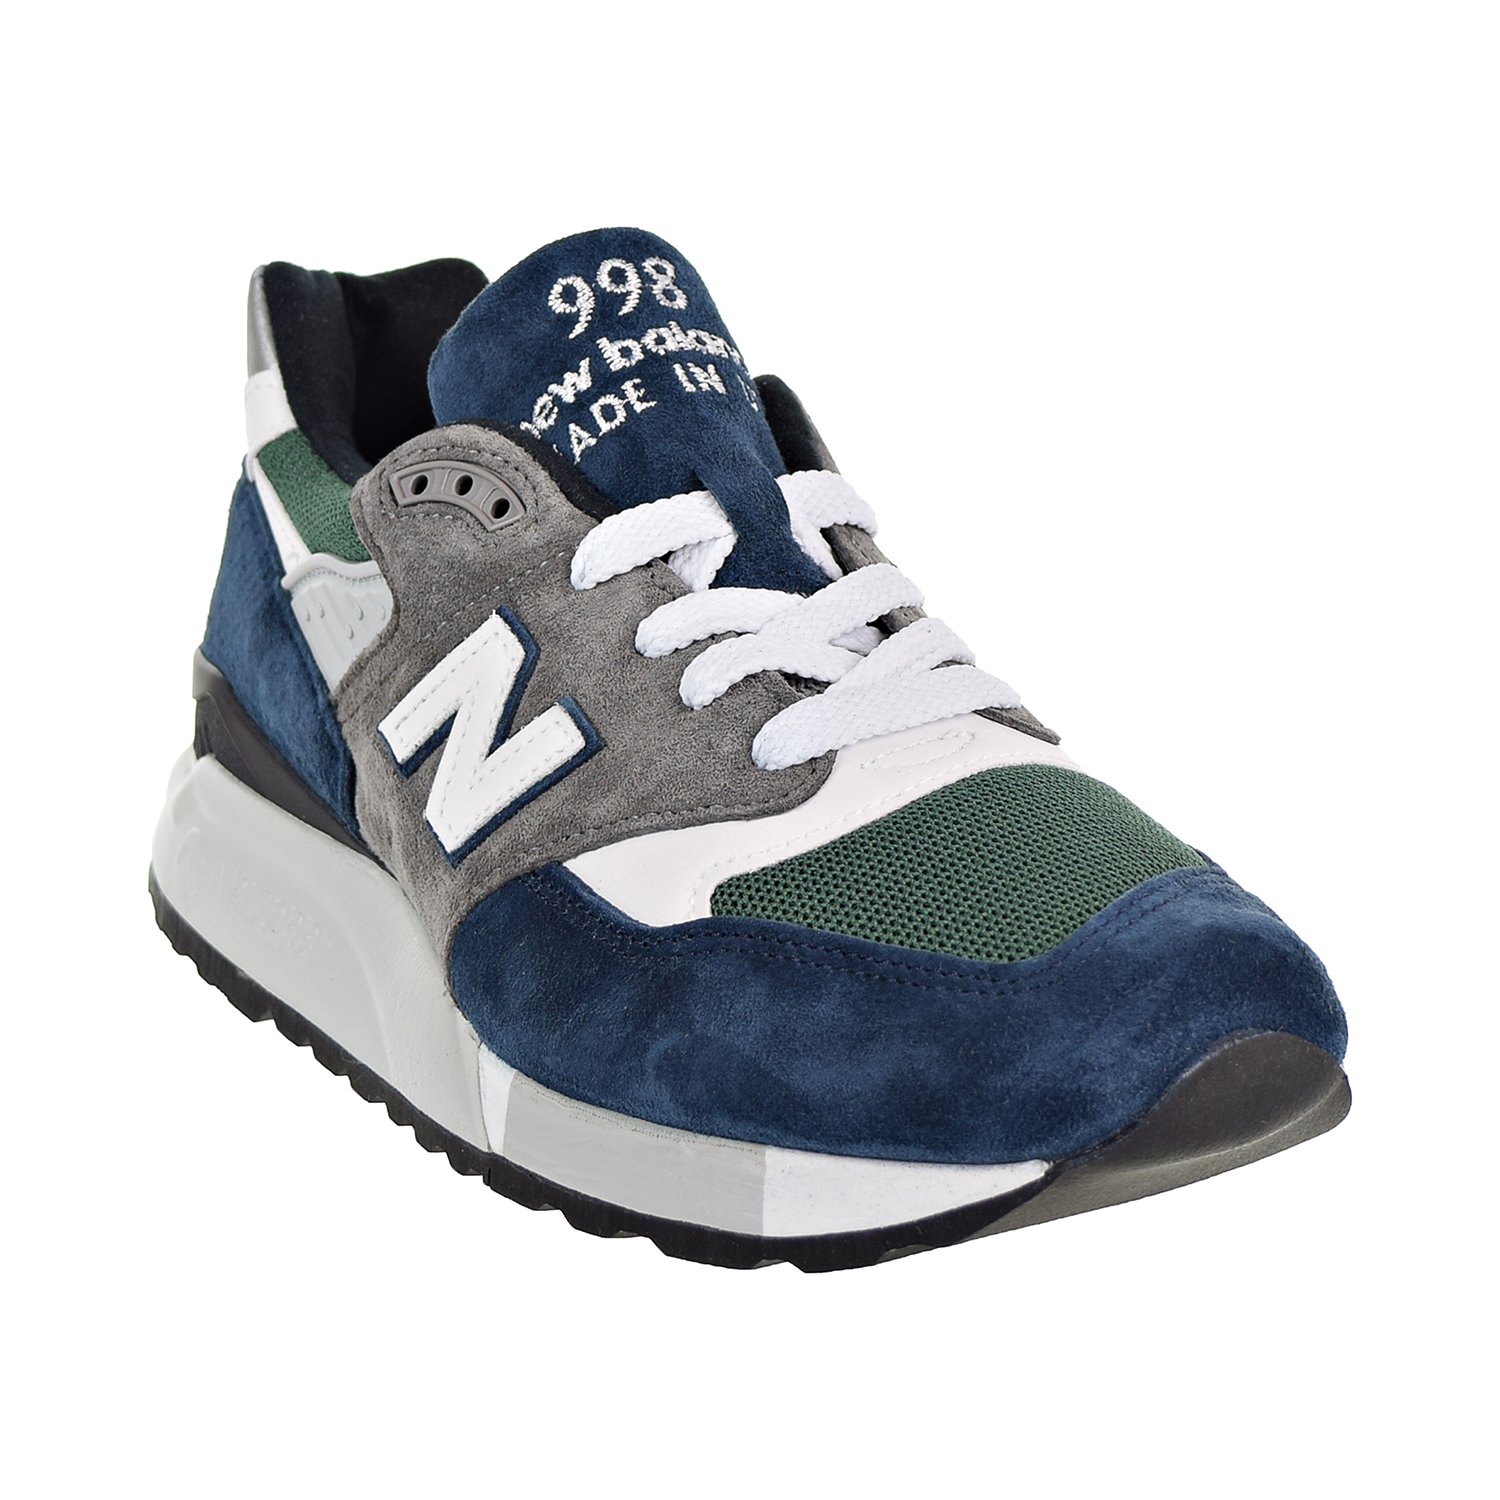 new product 4b7f8 9bef4 New Balance 998 Made In USA Men s Shoes Navy Green Grey m998-nl